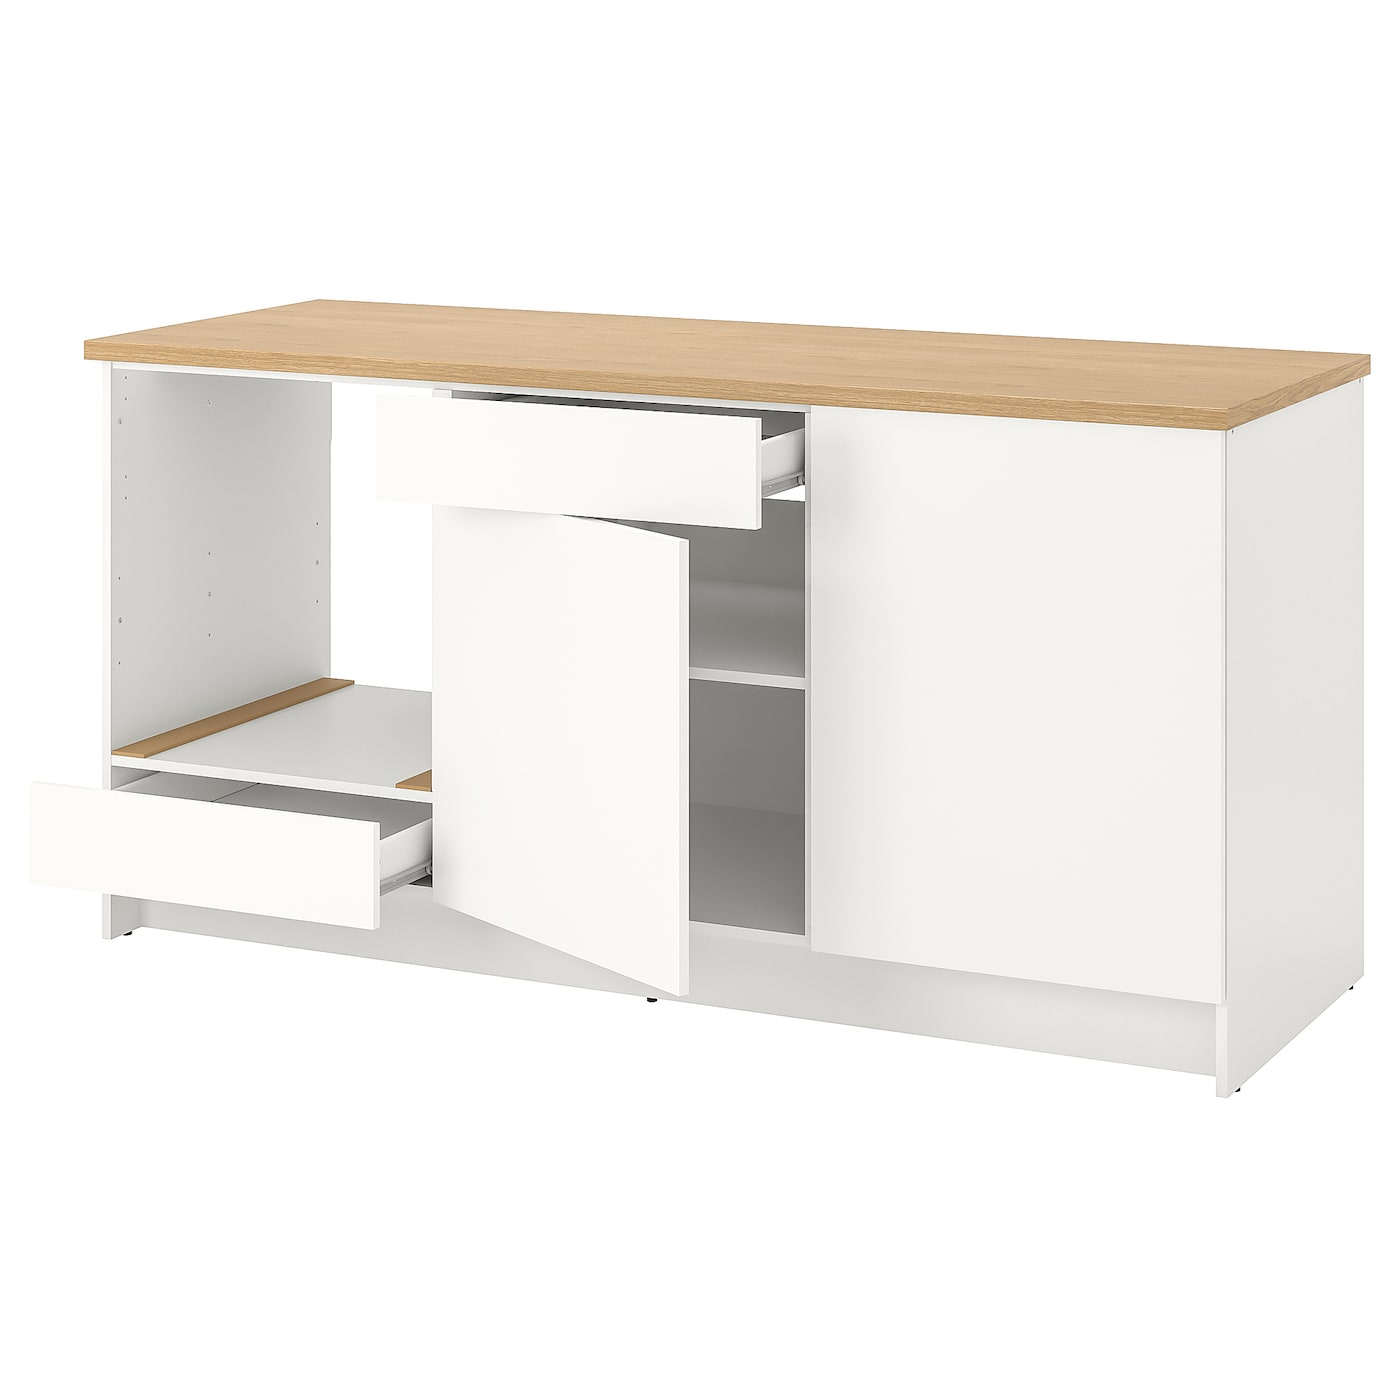 IKEA KNOXHULT base cabinet with doors and drawer The door can be mounted to open left or right.